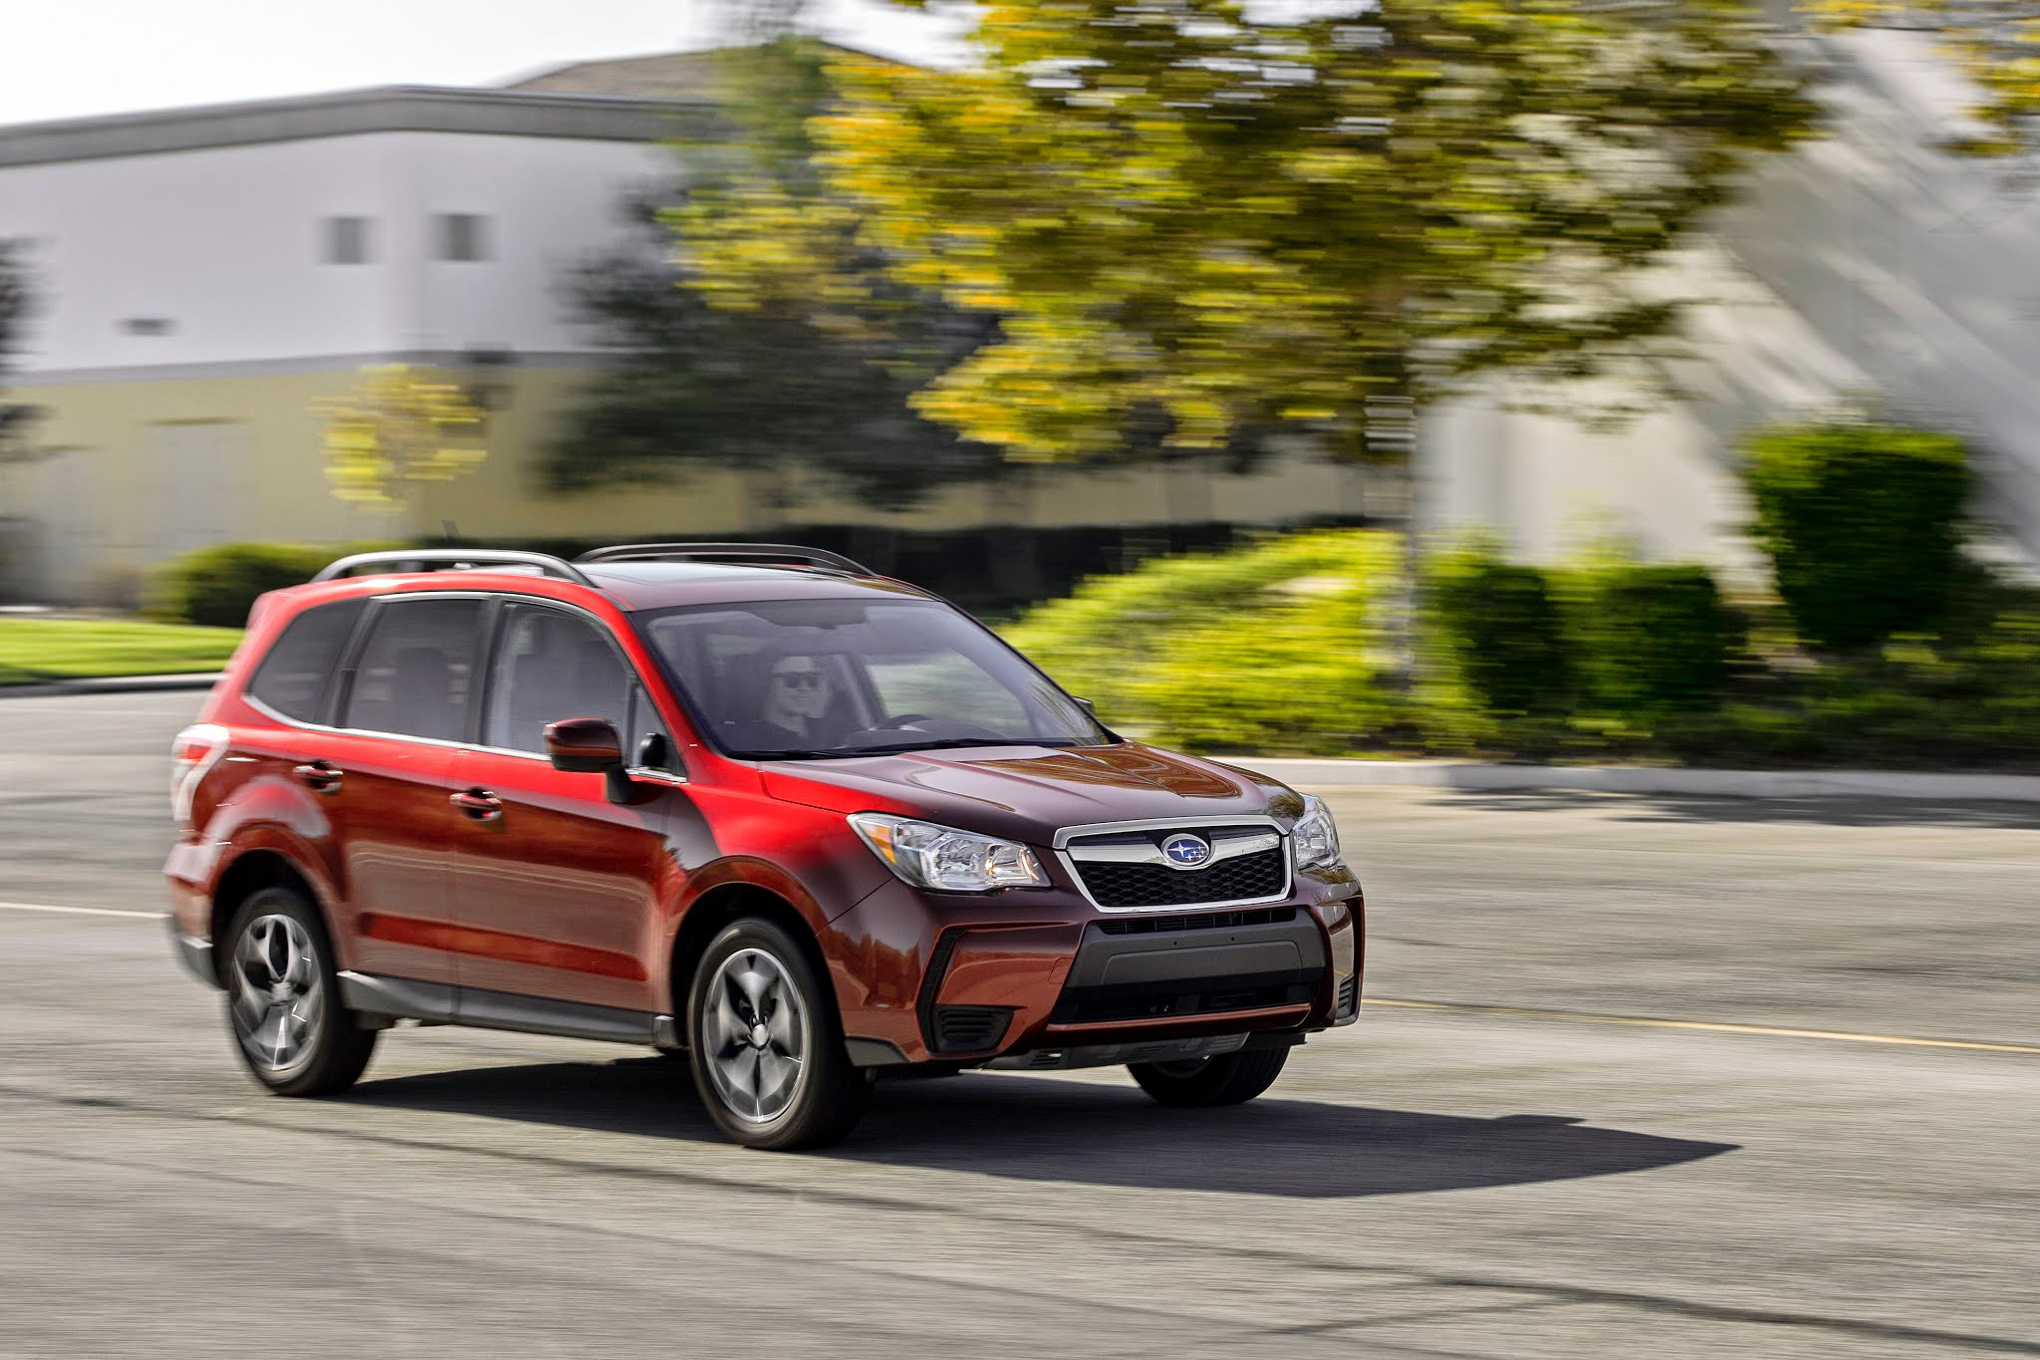 2014 Subaru Forester 2 0XT Review - Long-Term Verdict